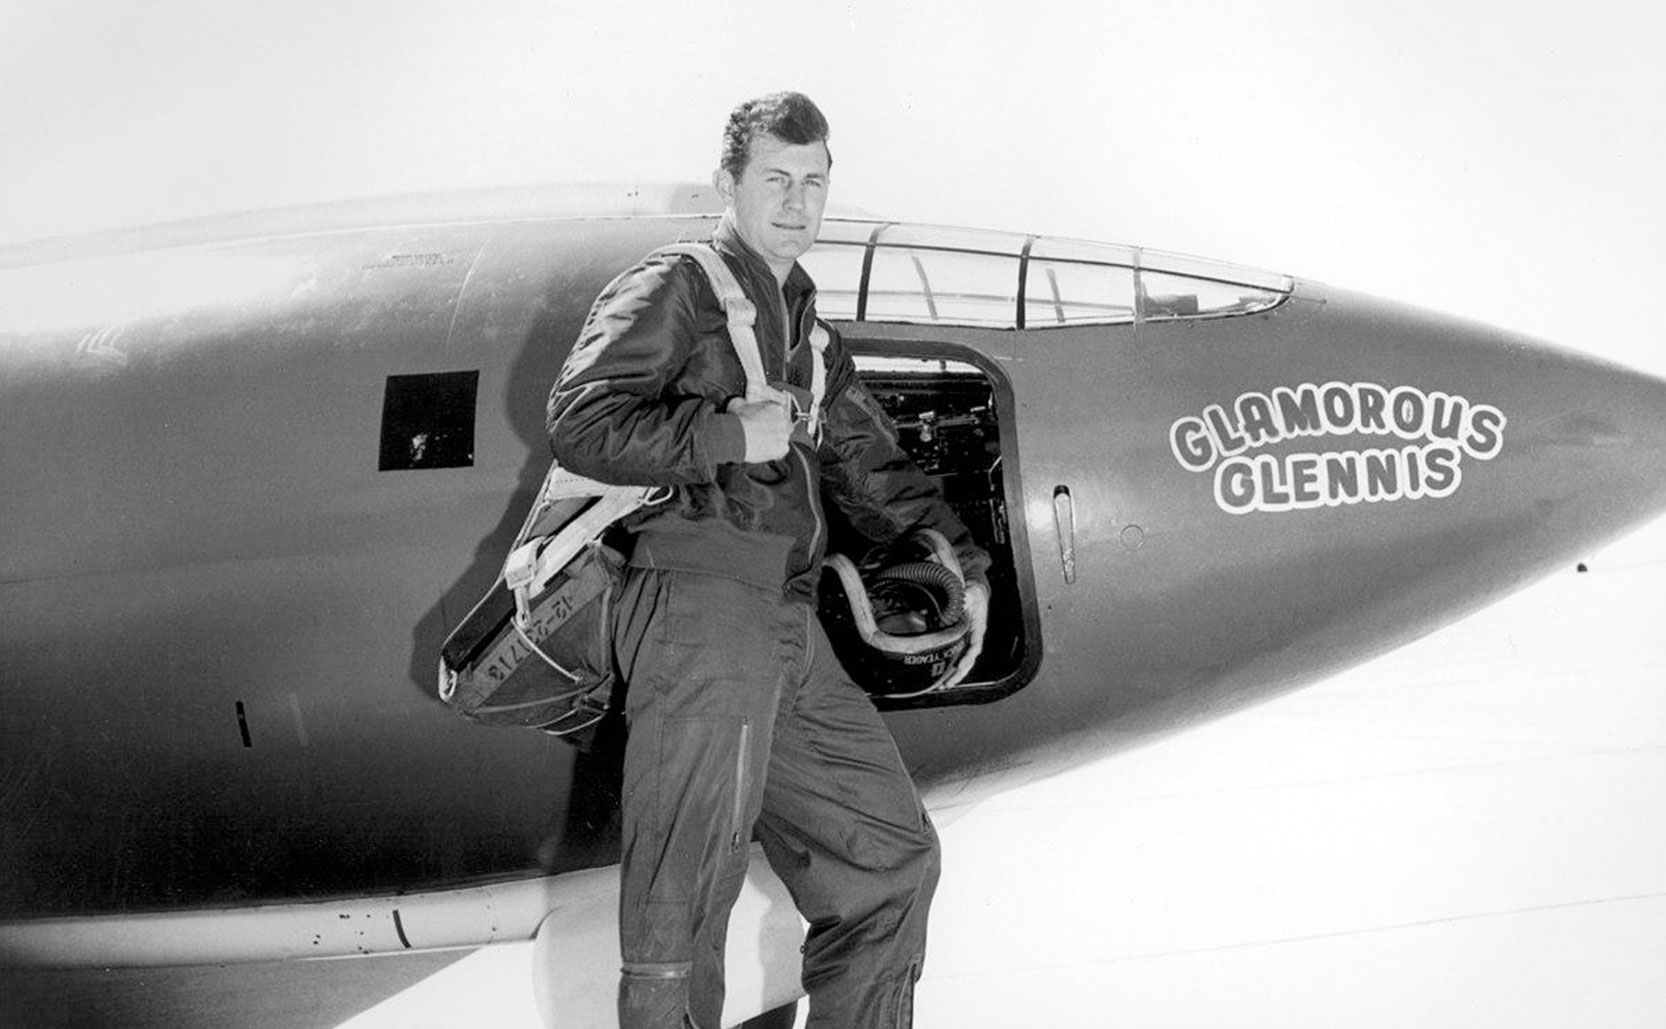 The Chuck Yeager Pilot Voice